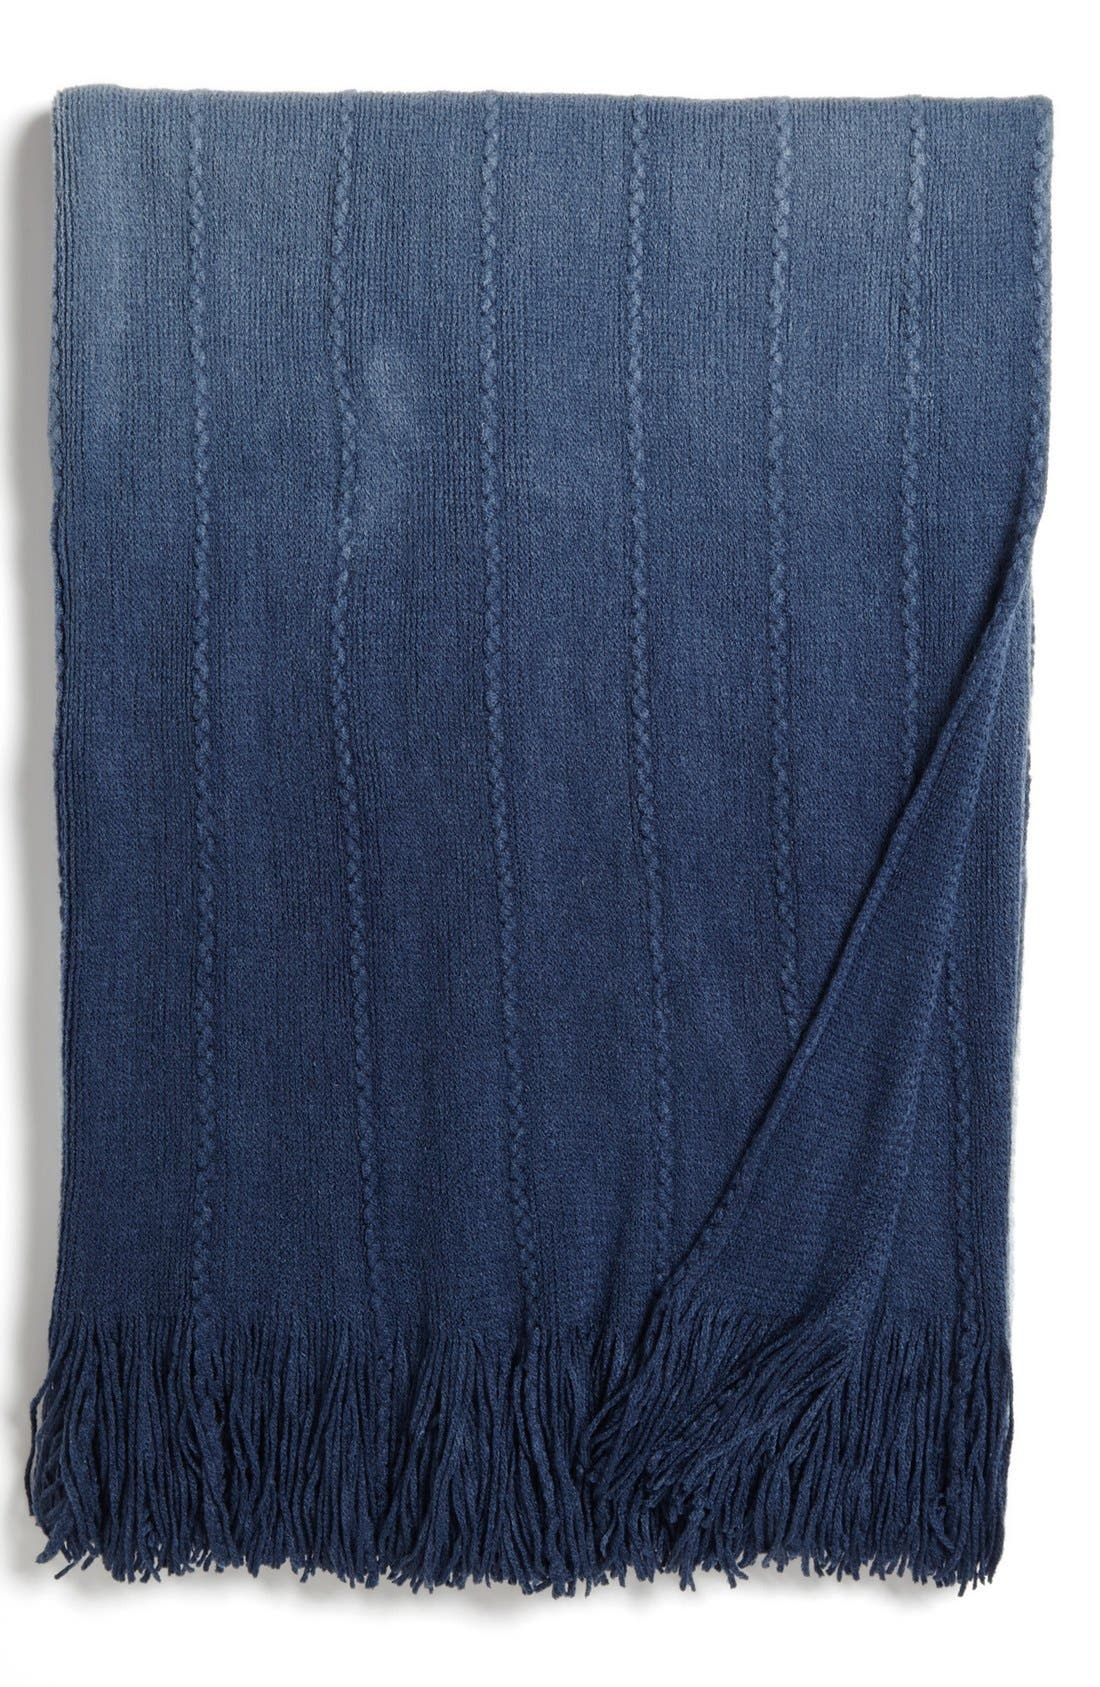 Alternate Image 1 Selected - Kennebunk Home 'Bainbridge Ombré' Throw